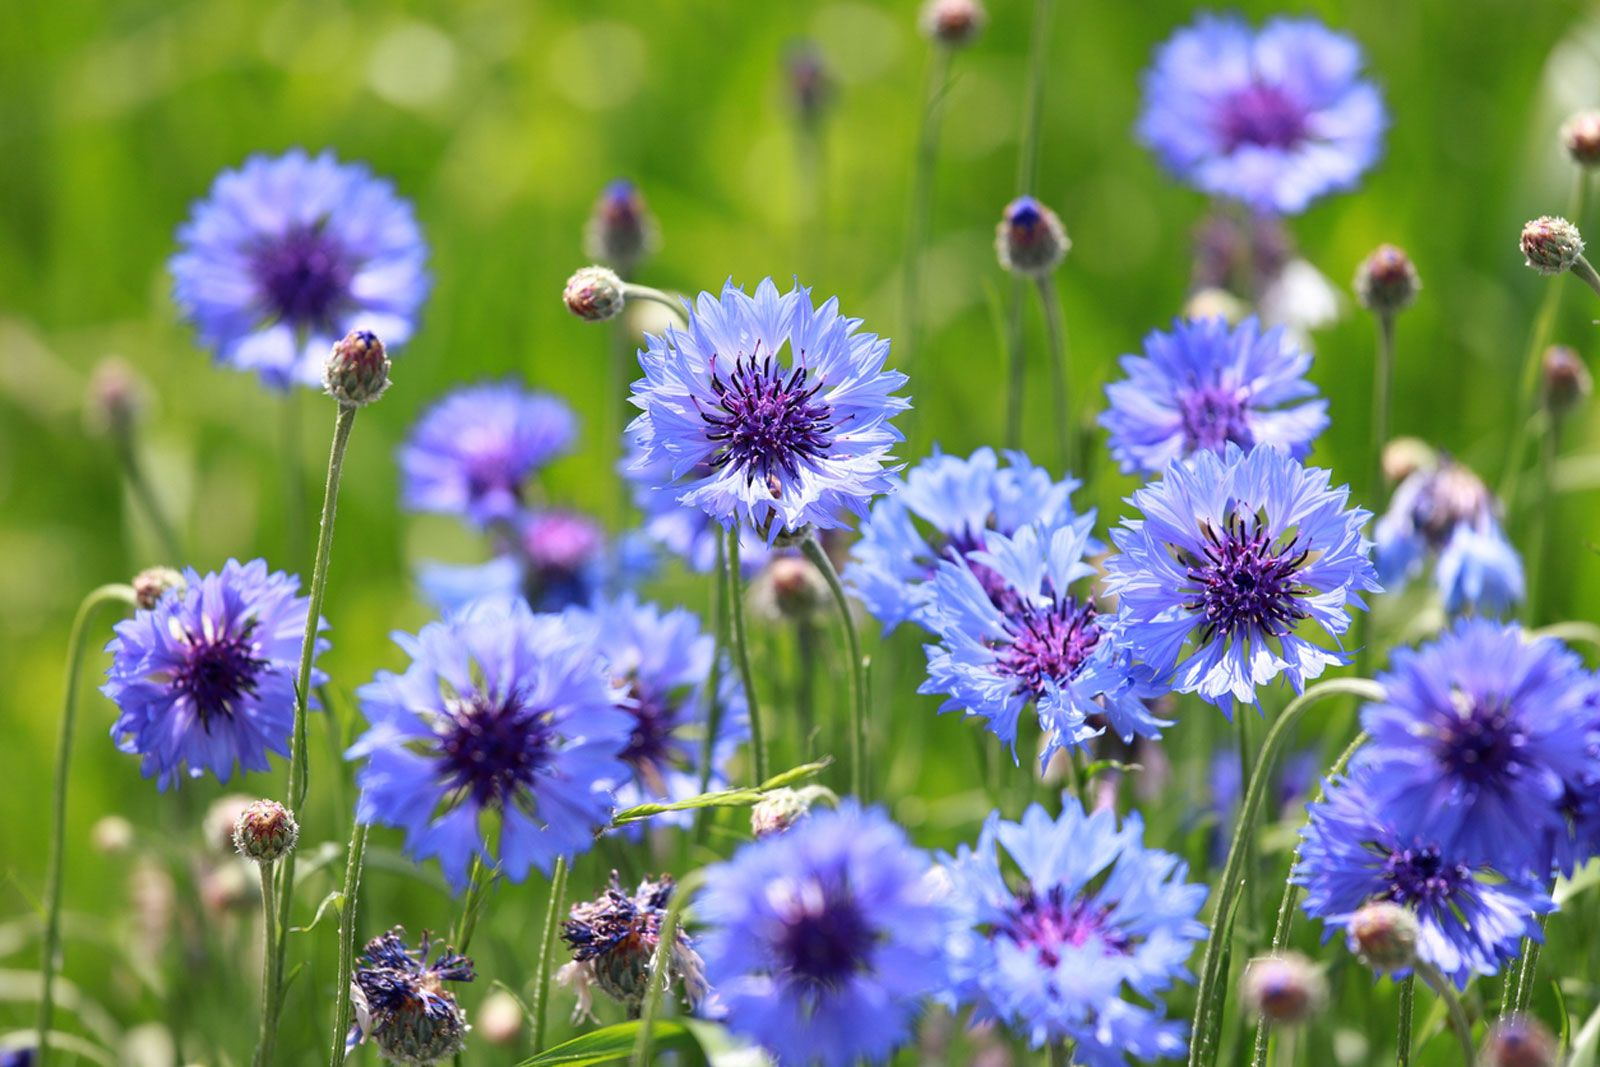 Growing Bachelor Buttons Tips About The Care Of Bachelor Button Plants In 2020 Bachelor Button Flowers Bachelor Buttons Plants